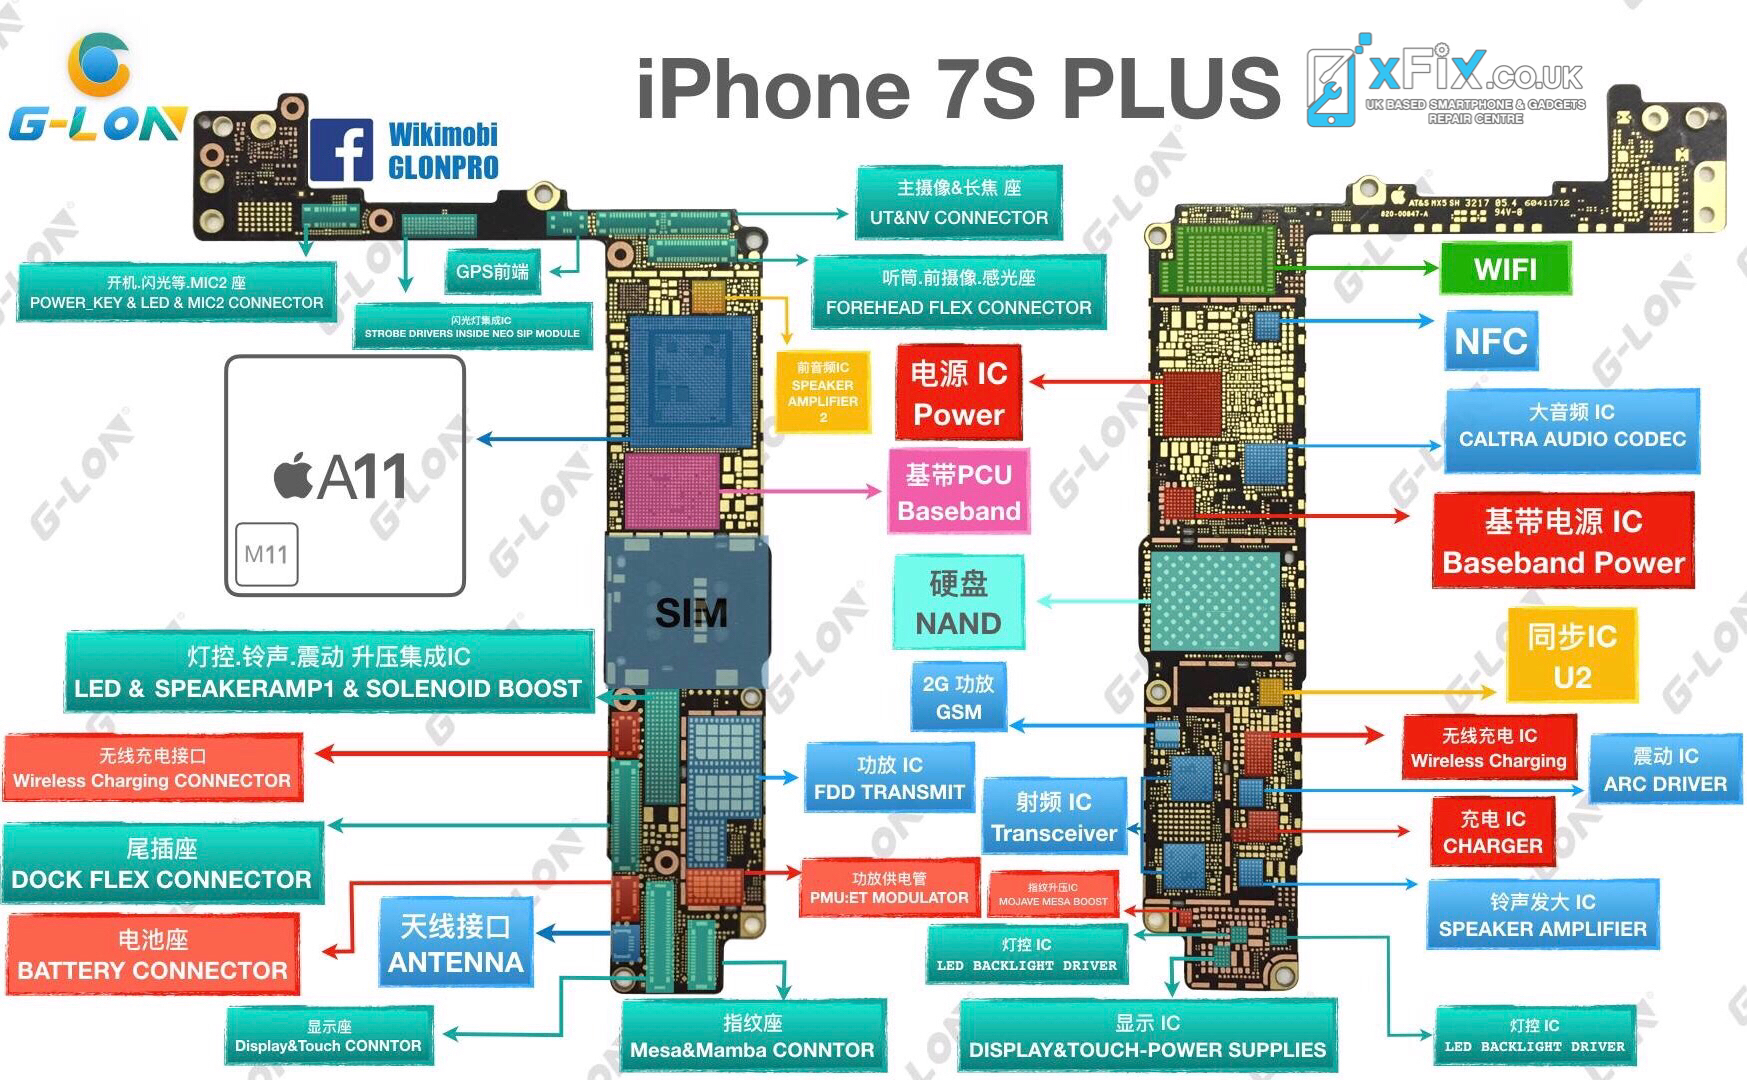 iphone schematic and wiring diagram chevy 4x4 actuator details for 7s plus pcb xfix